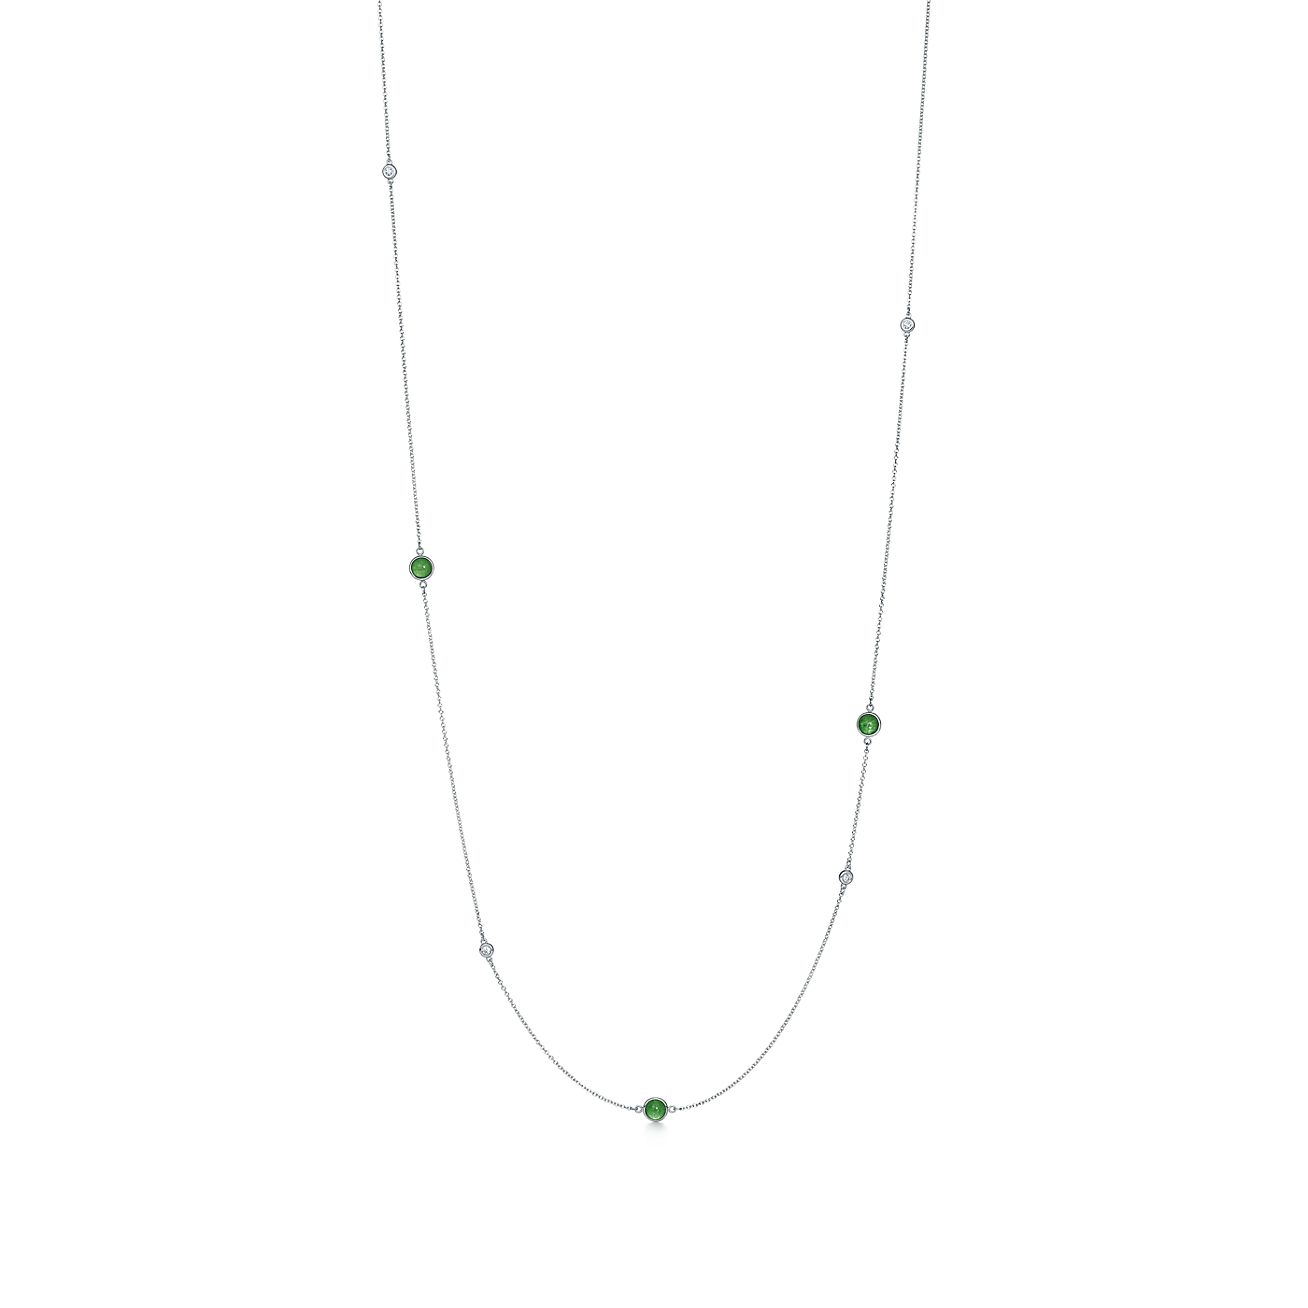 Elsa Peretti Color by the Yard necklace in silver with green aventurine and dia Tiffany & Co. jLBuIgBu